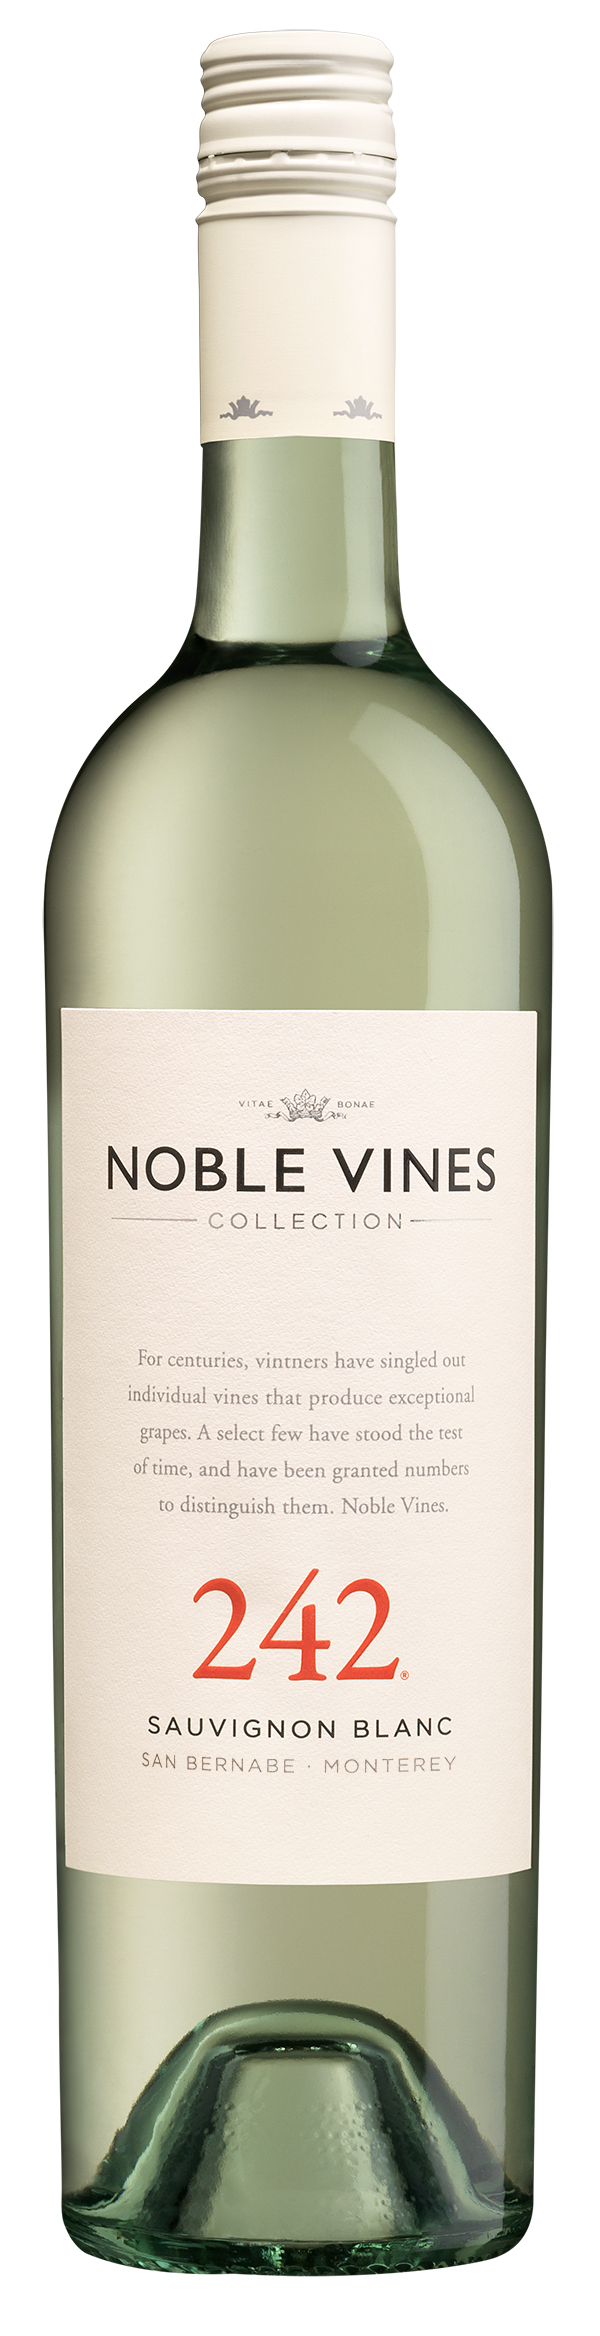 Product Image for 2018 Noble Vines 242 Sauvignon Blanc